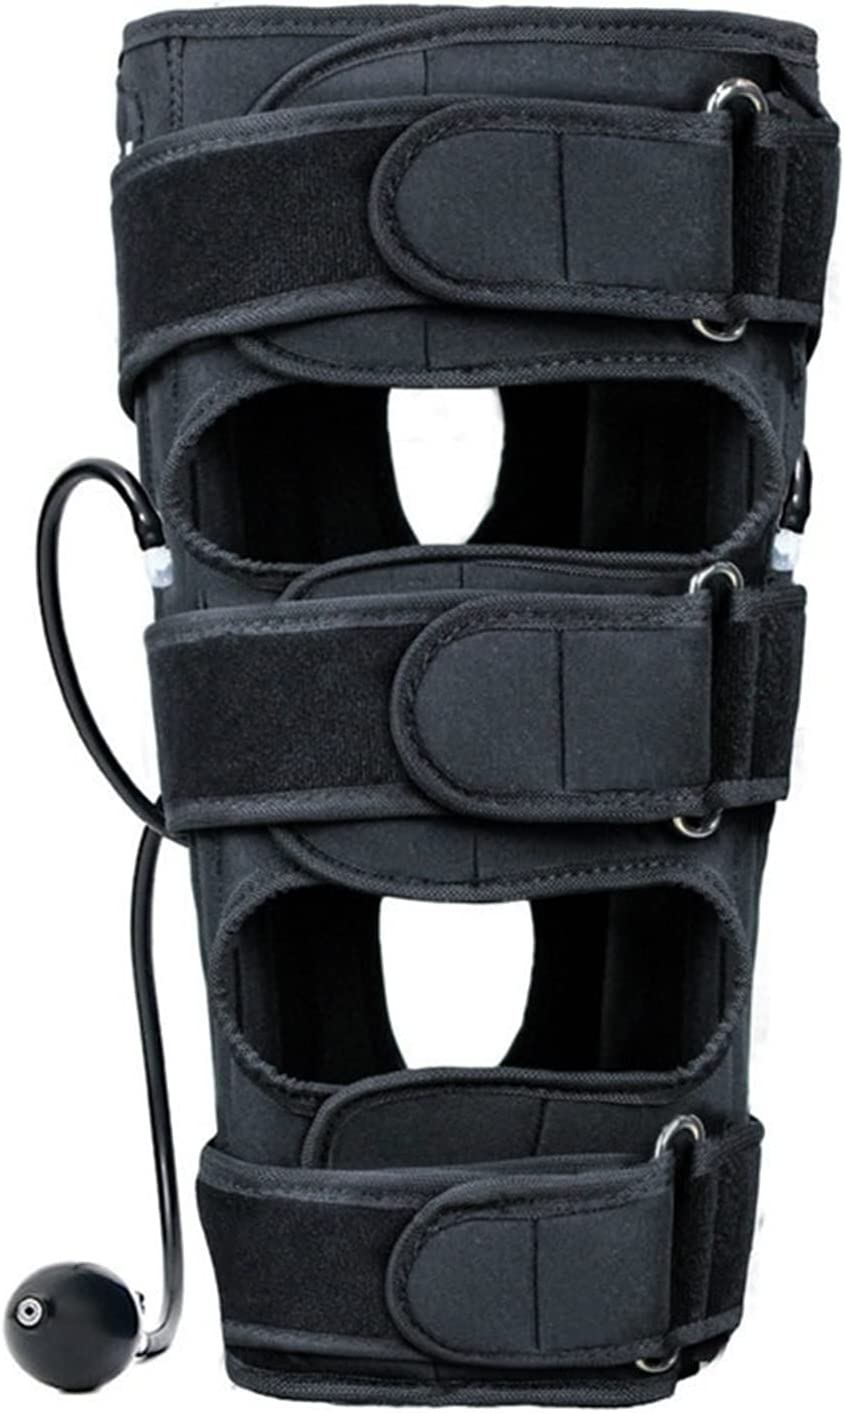 Max 75% OFF Popular brand in the world O X Leg Correction Belt Supports Straps Thigh Bel